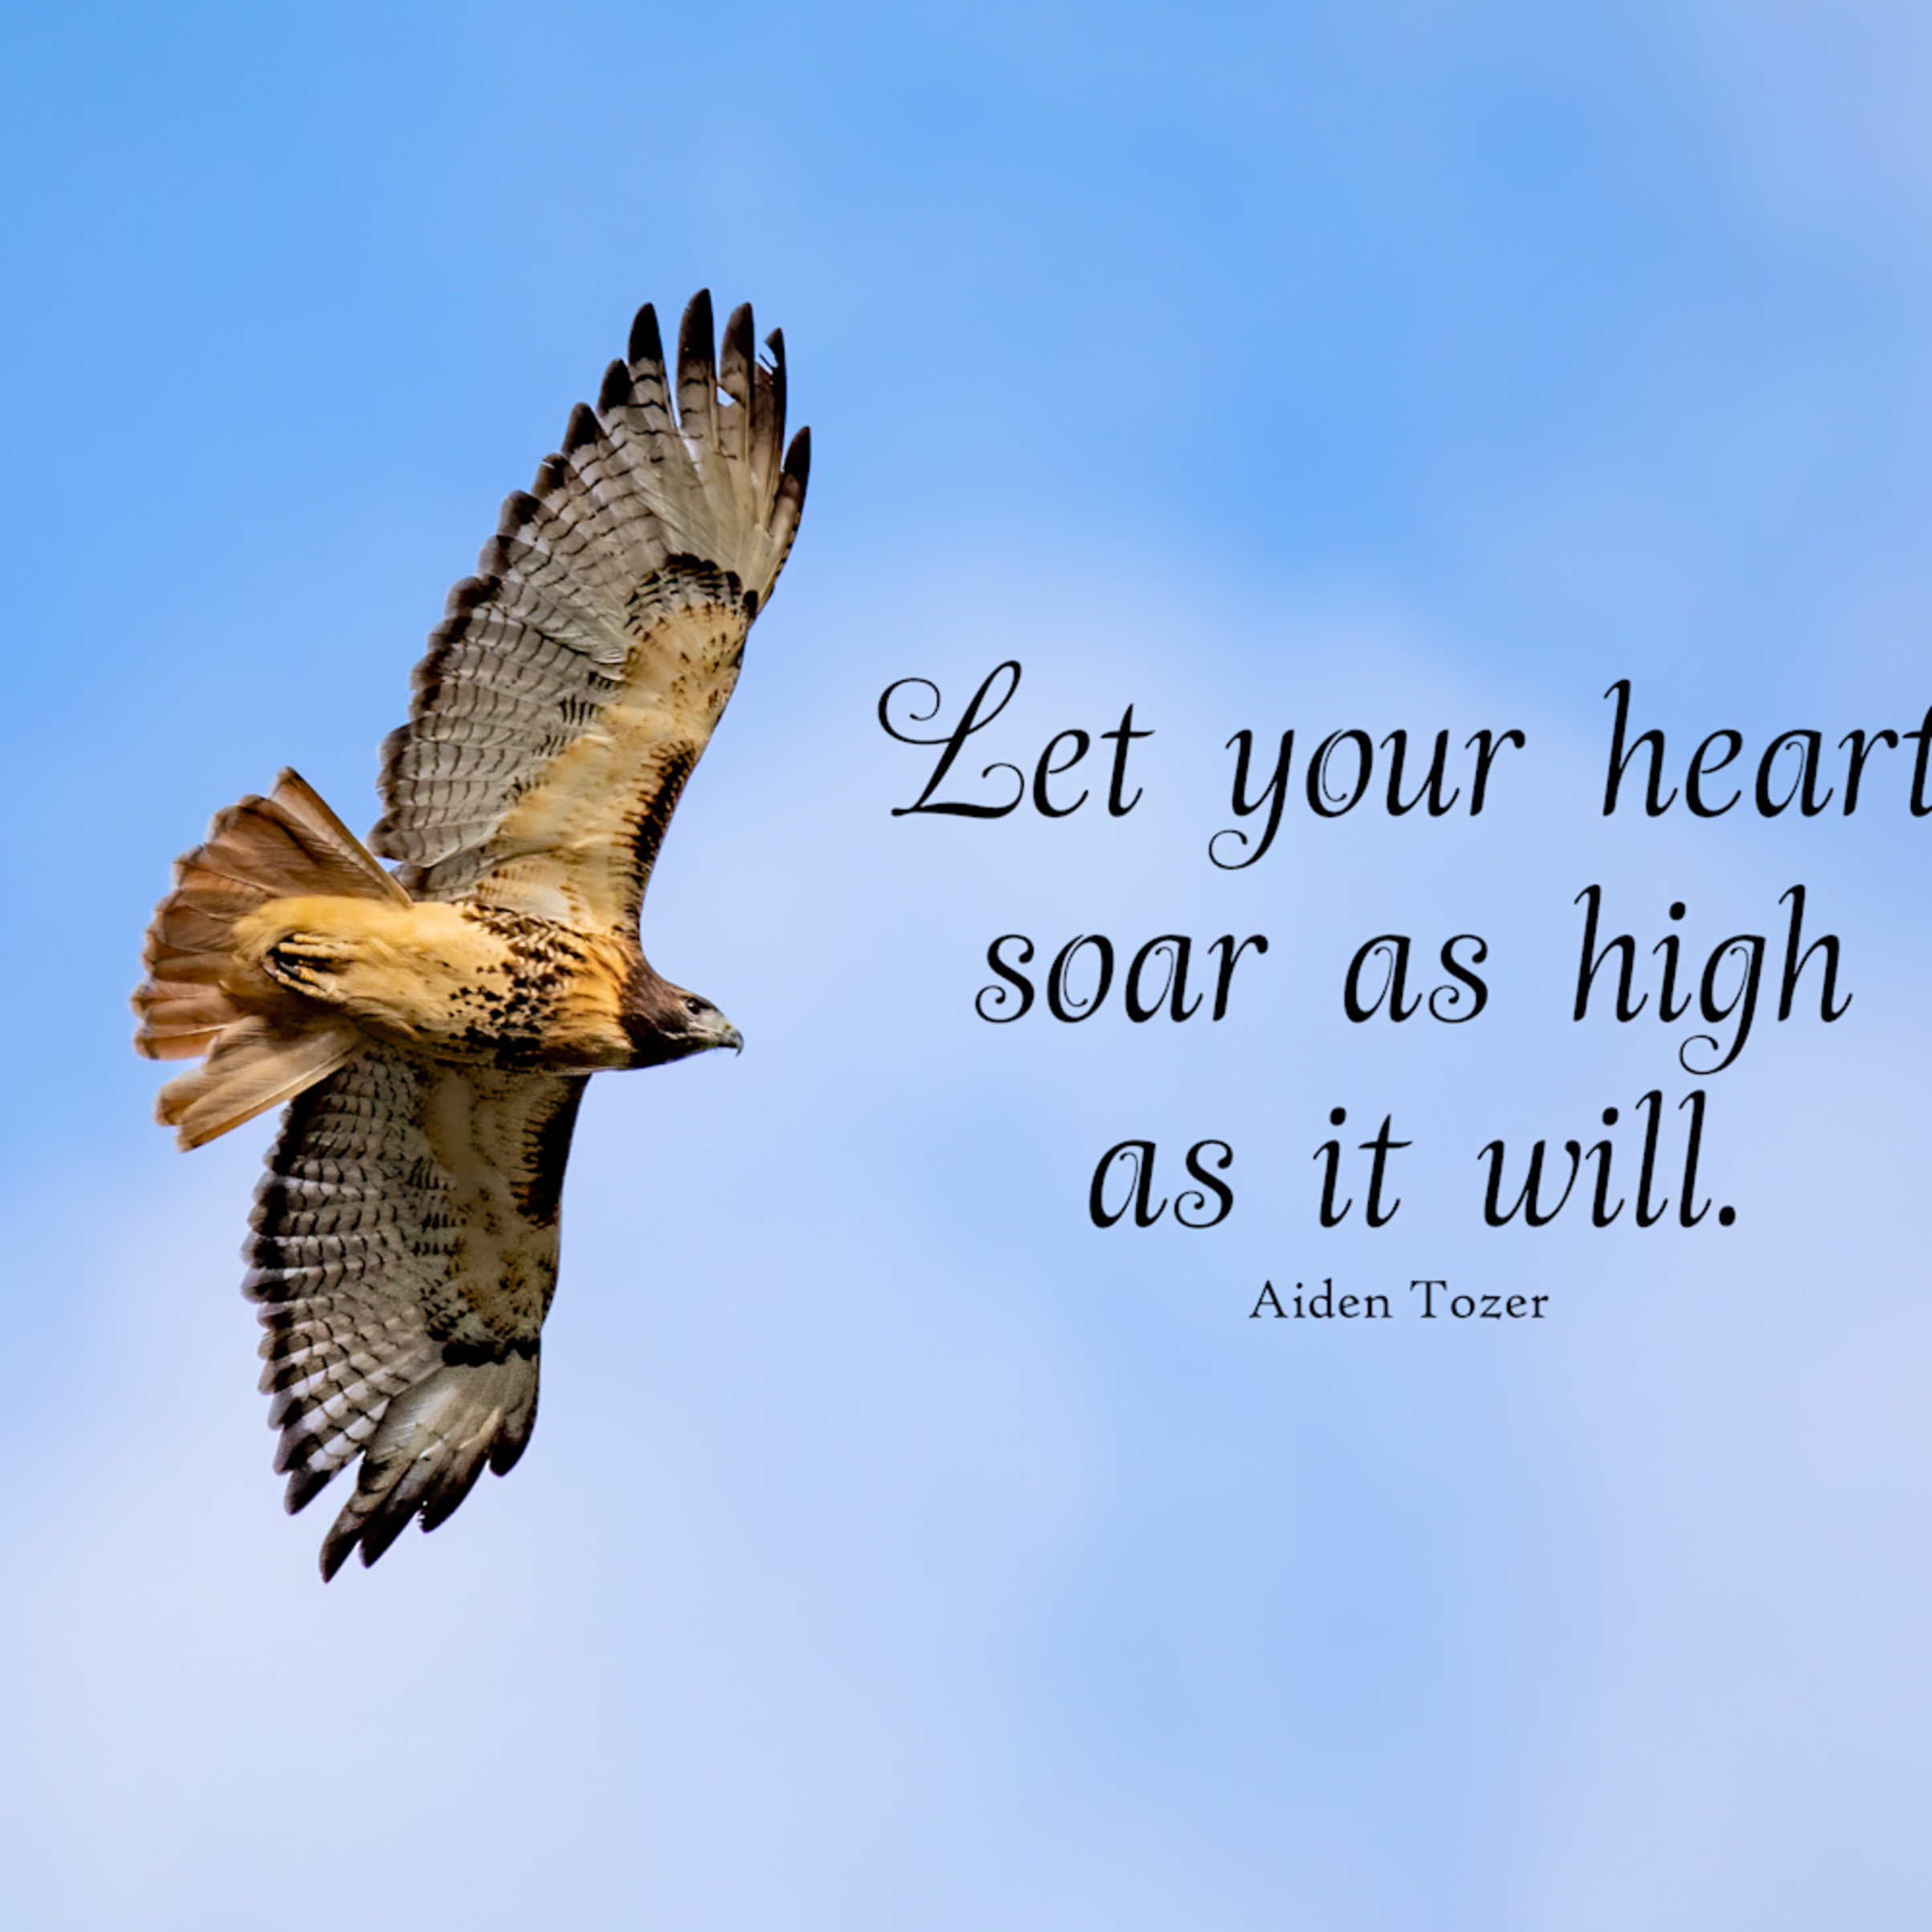 Let your heart soar as high as it will q6wcxo